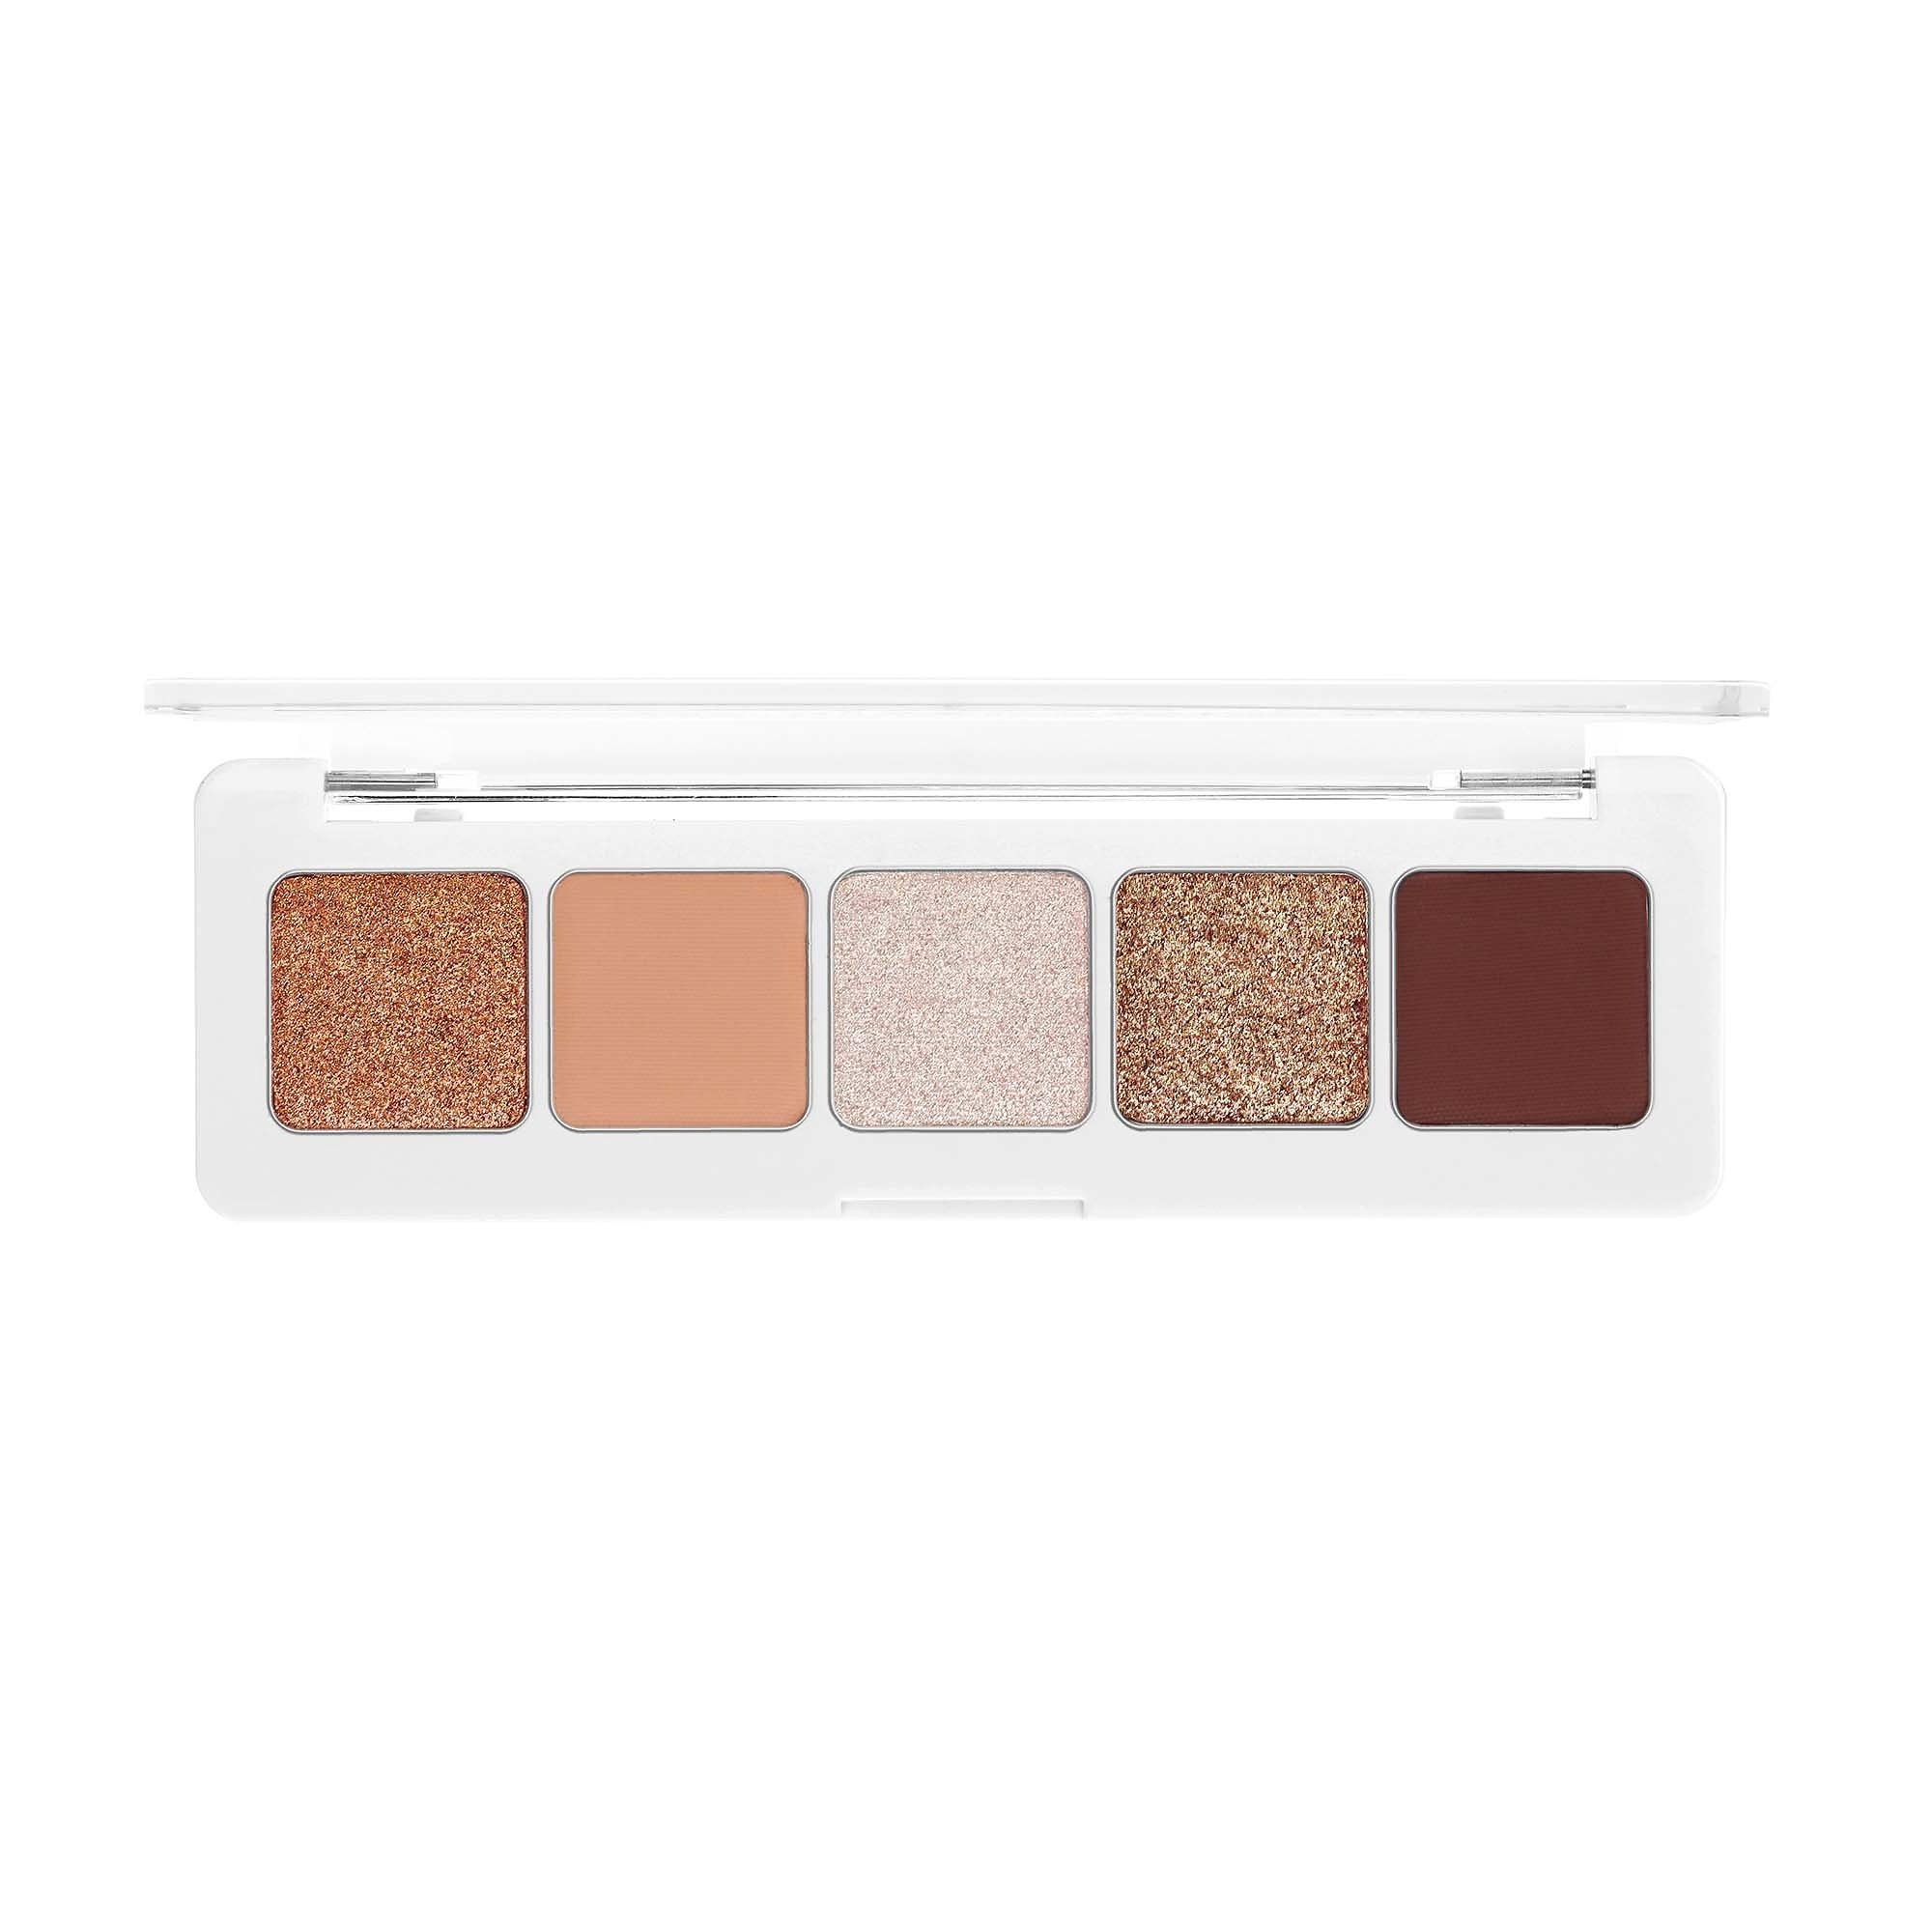 The January 2019 Eyeshadow Palettes At Sephora Will Inspire